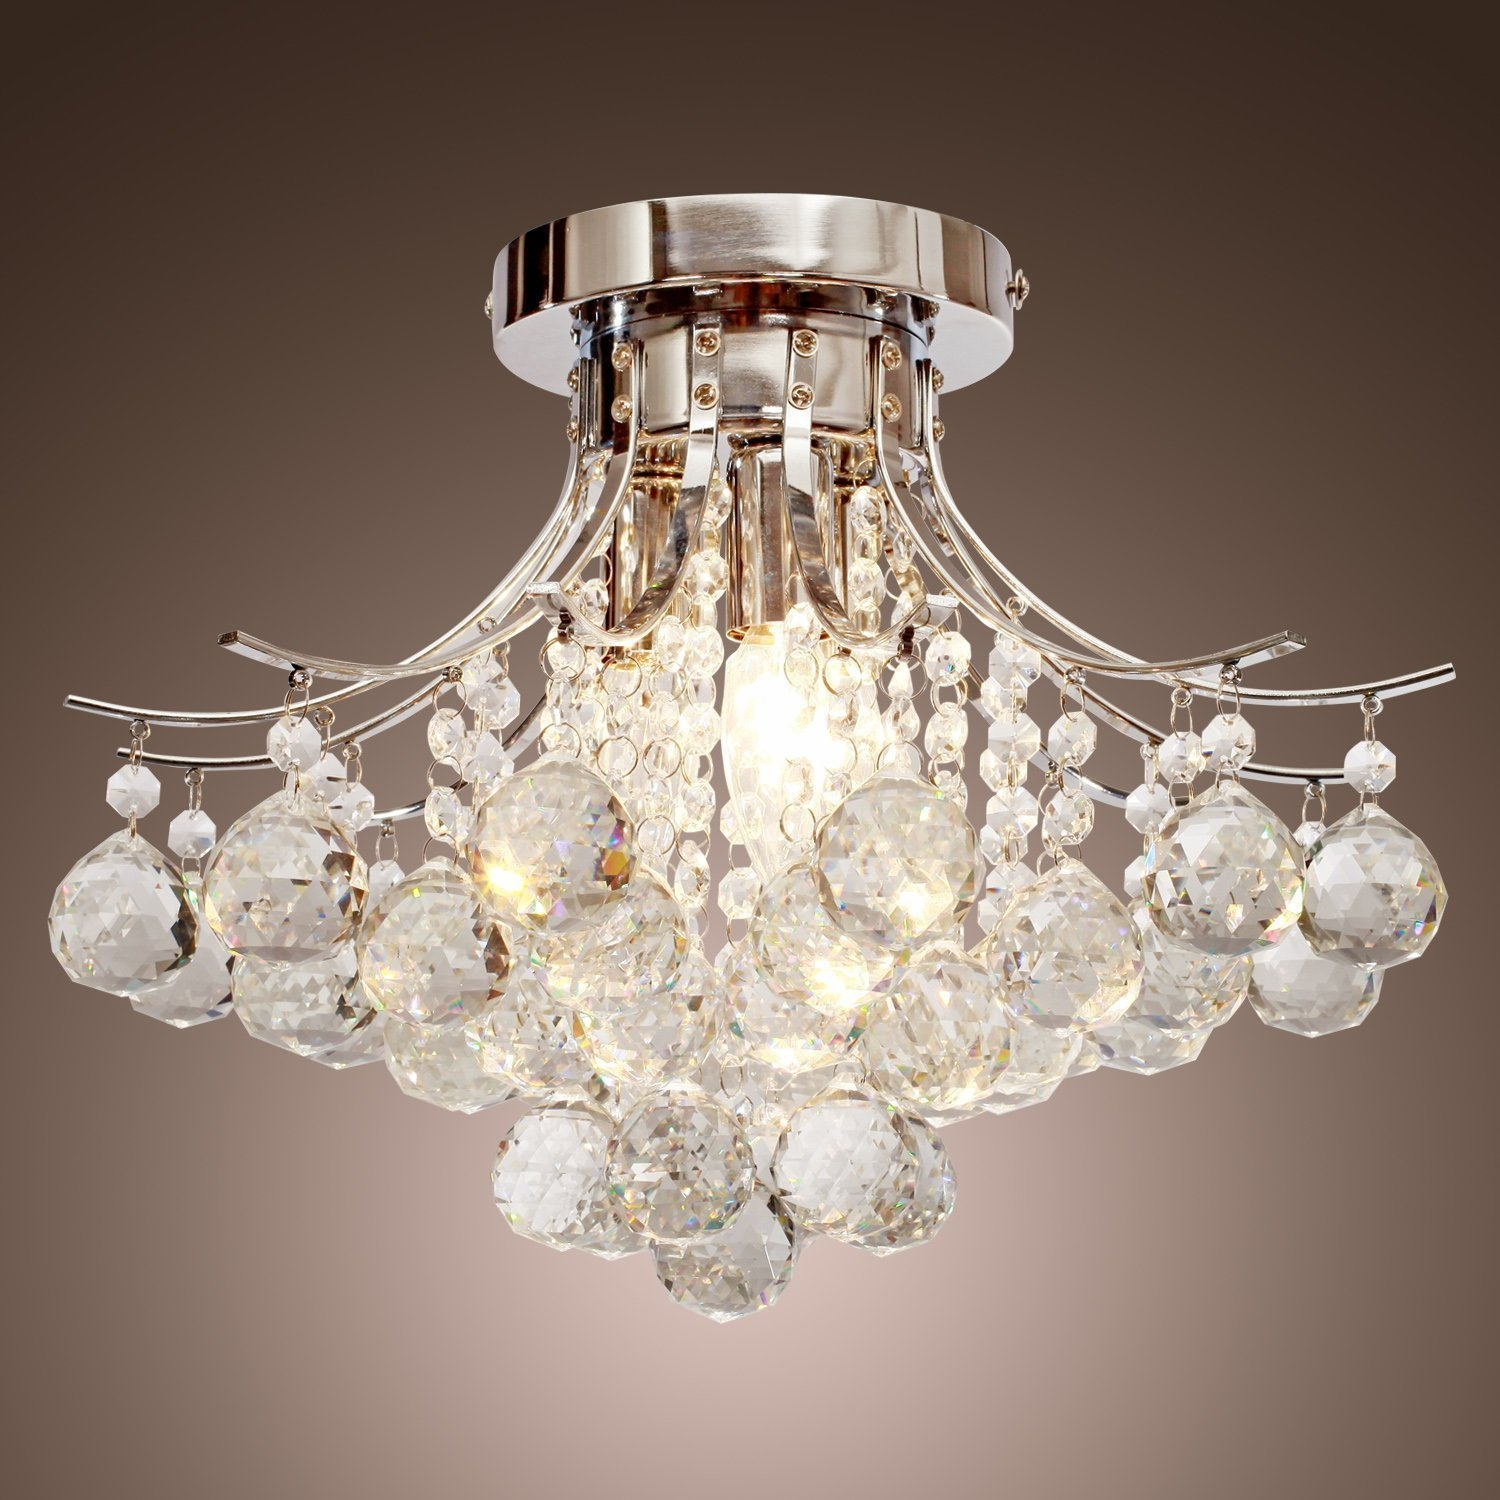 Chandeliers Amazon Lighting Ceiling Fans Ceiling Lights With Regard To Chandelier Lights (#3 of 12)